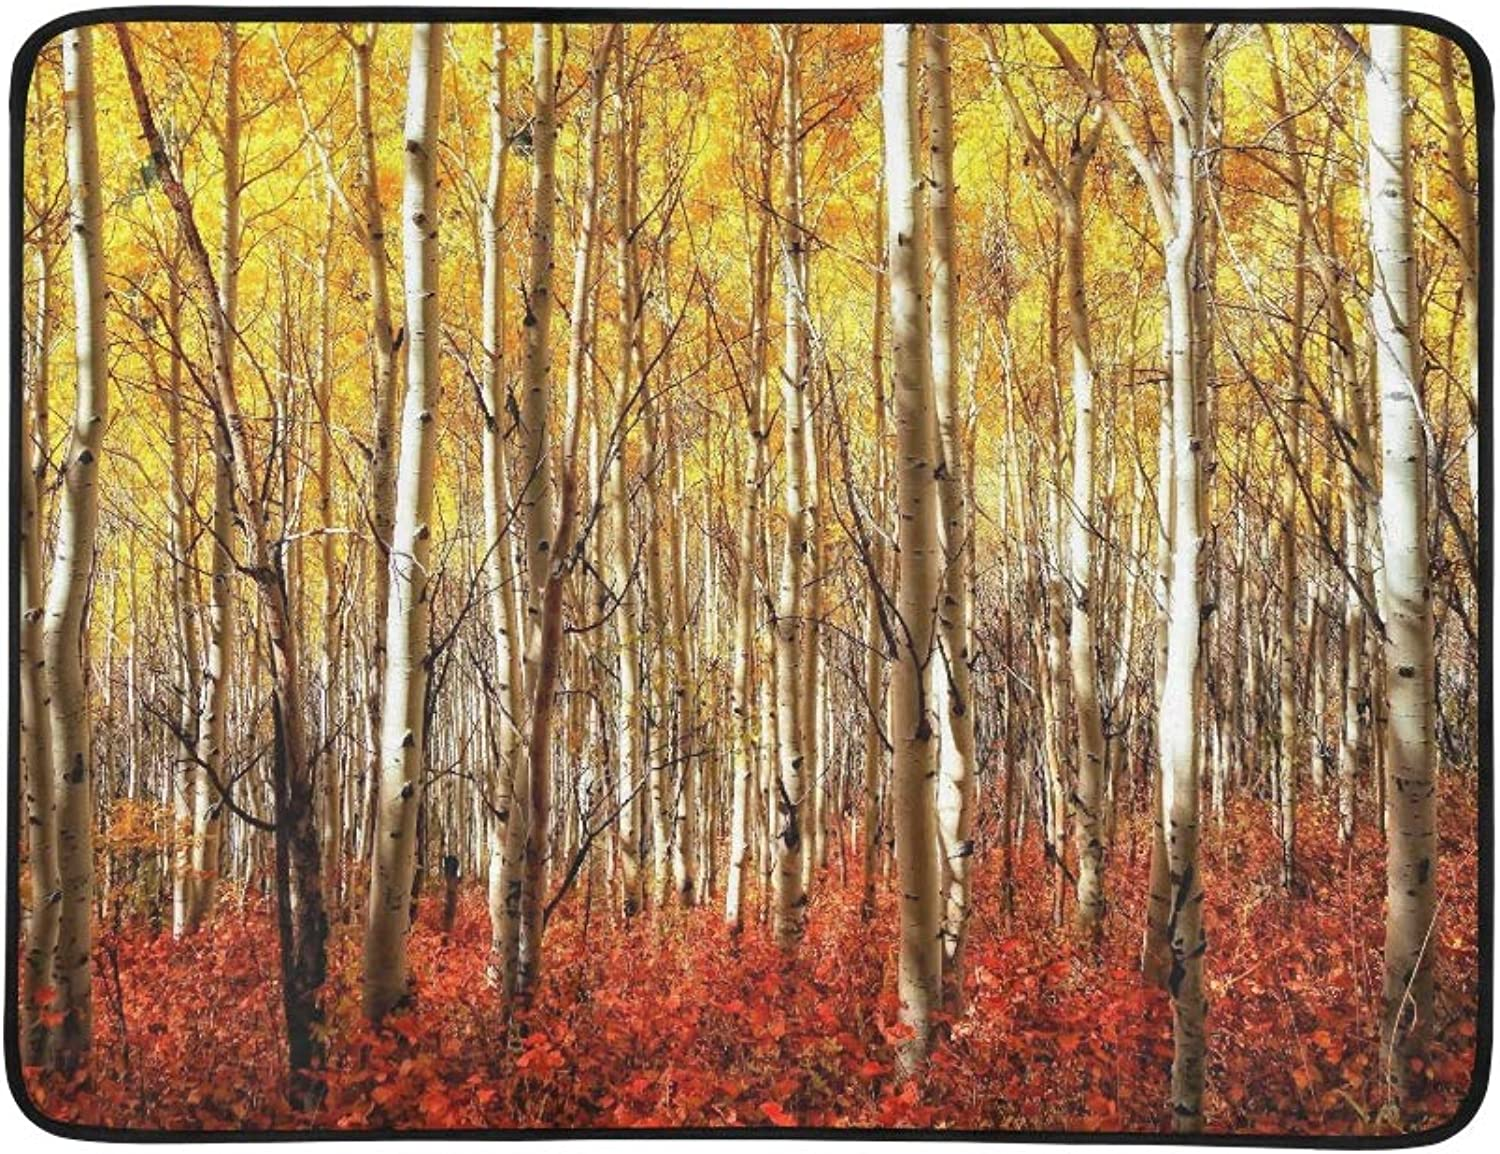 Yellow Aspens with Deep Red Bushes Below Red Gras Pattern Portable and Foldable Blanket Mat 60x78 Inch Handy Mat for Camping Picnic Beach Indoor Outdoor Travel